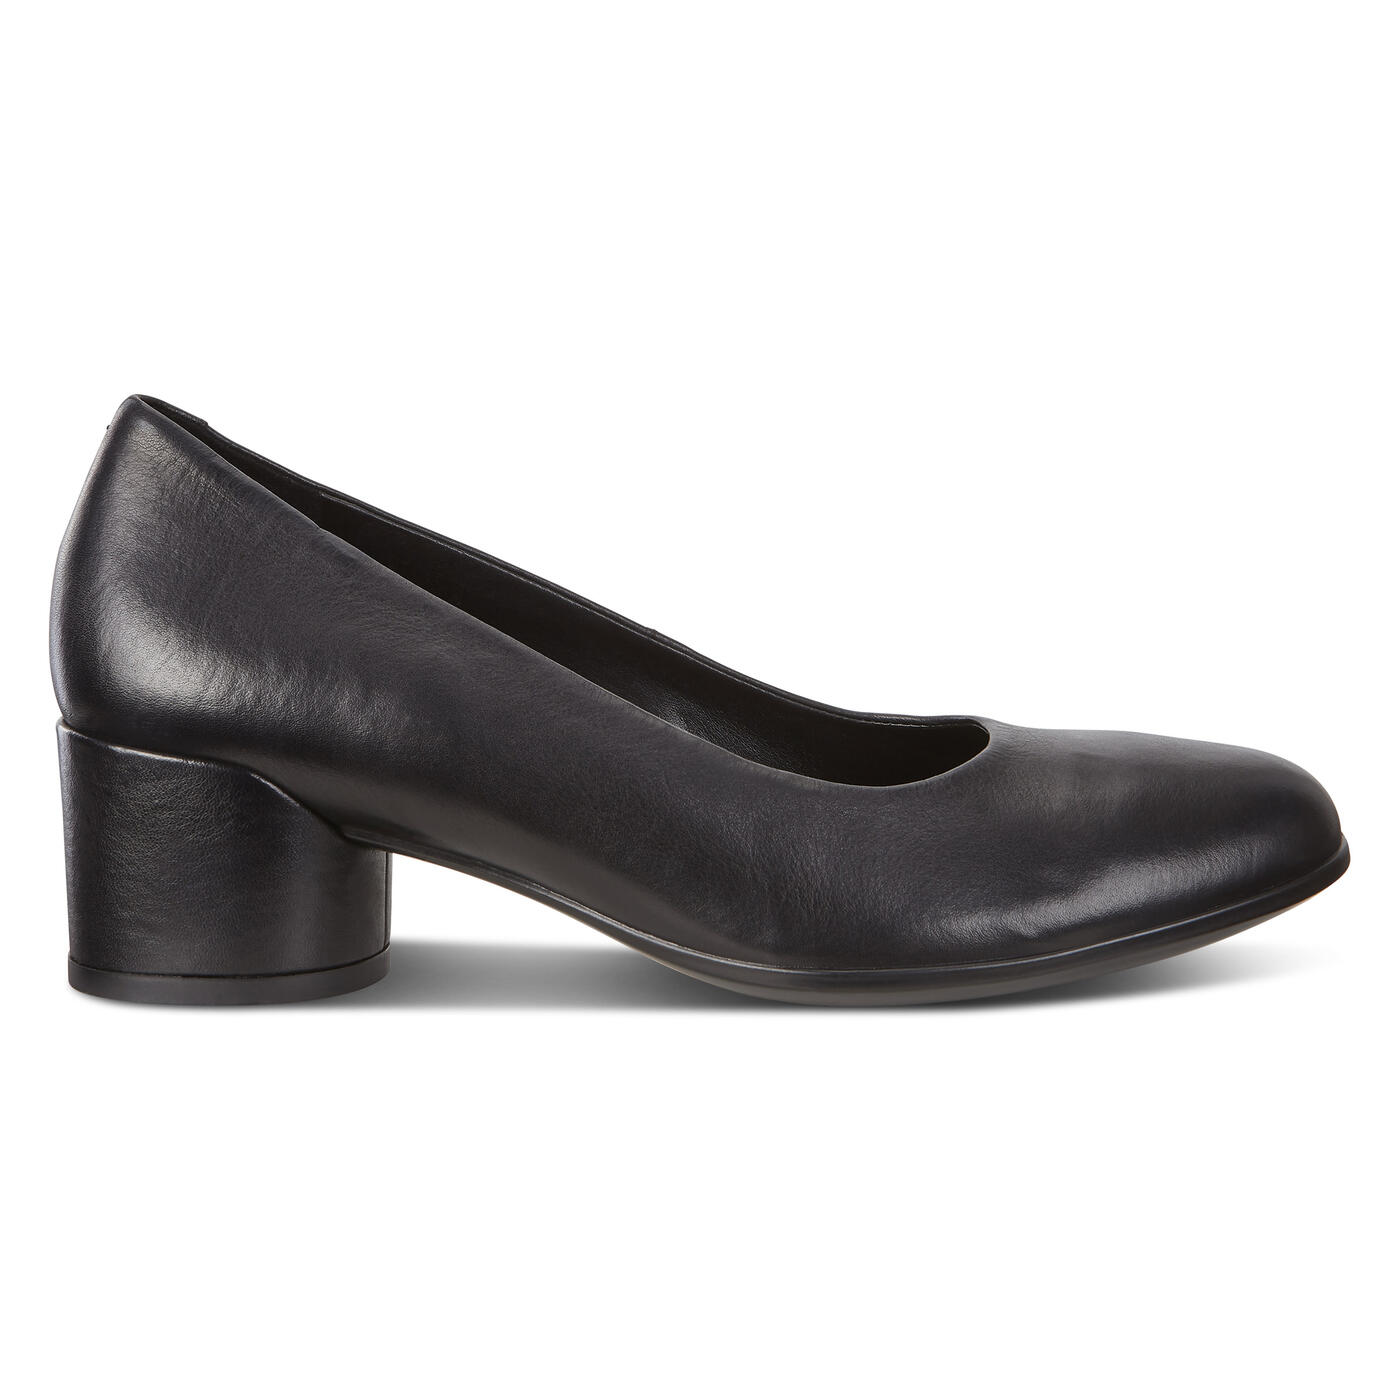 ECCO SHAPE BLOCK Modern Pump 35mm